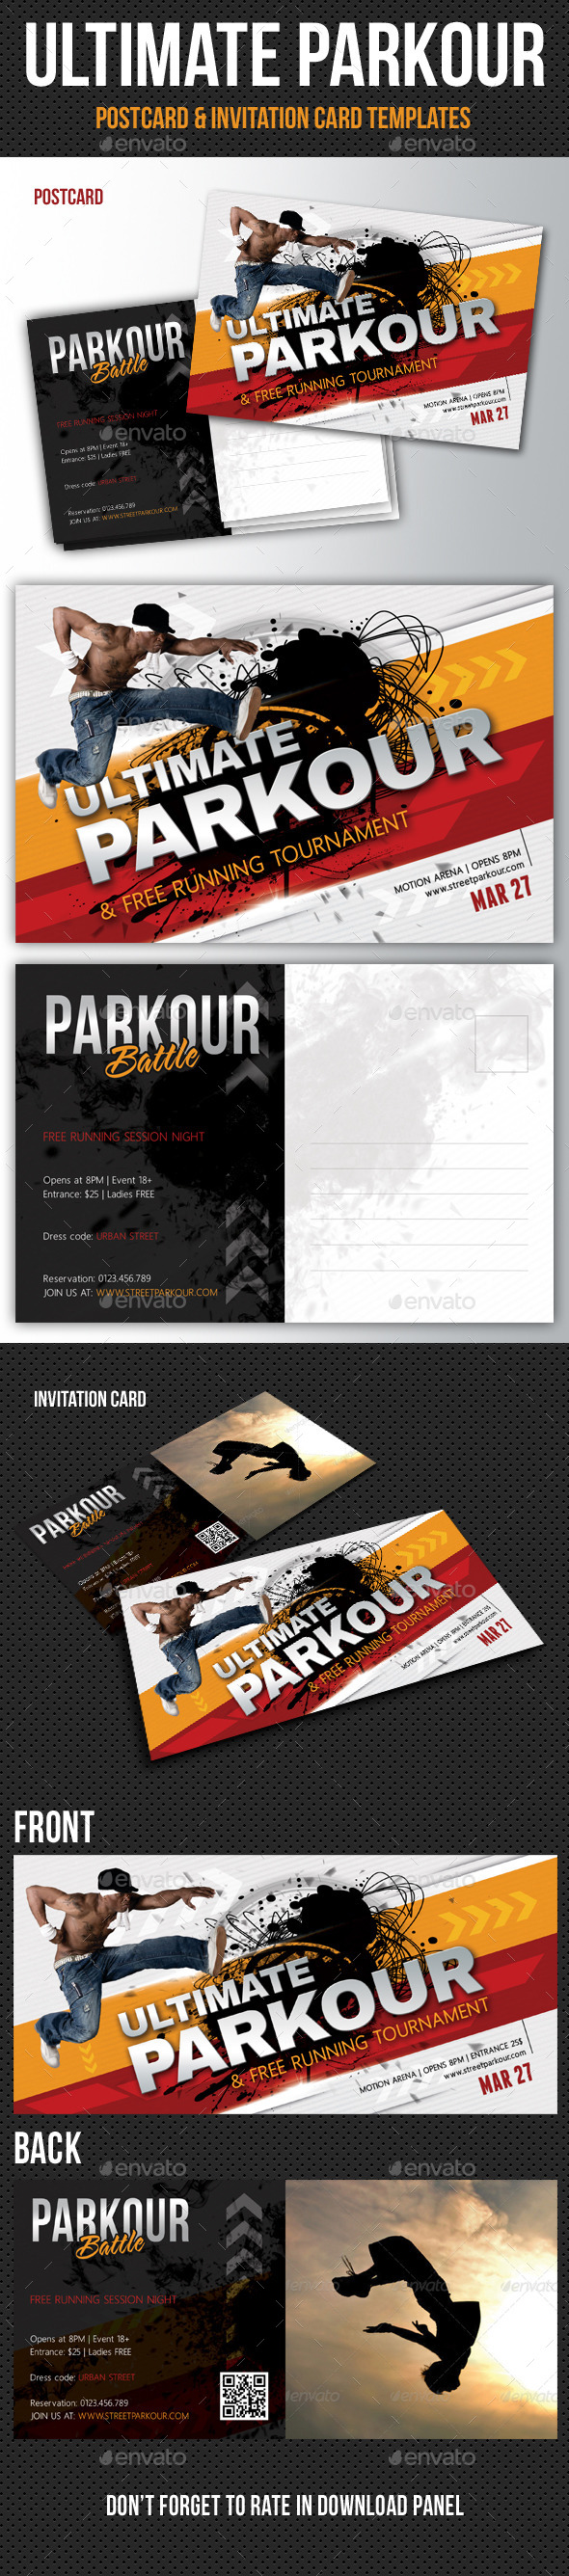 GraphicRiver Ultimate Parkour Invitation and Postcard Pack 10678776